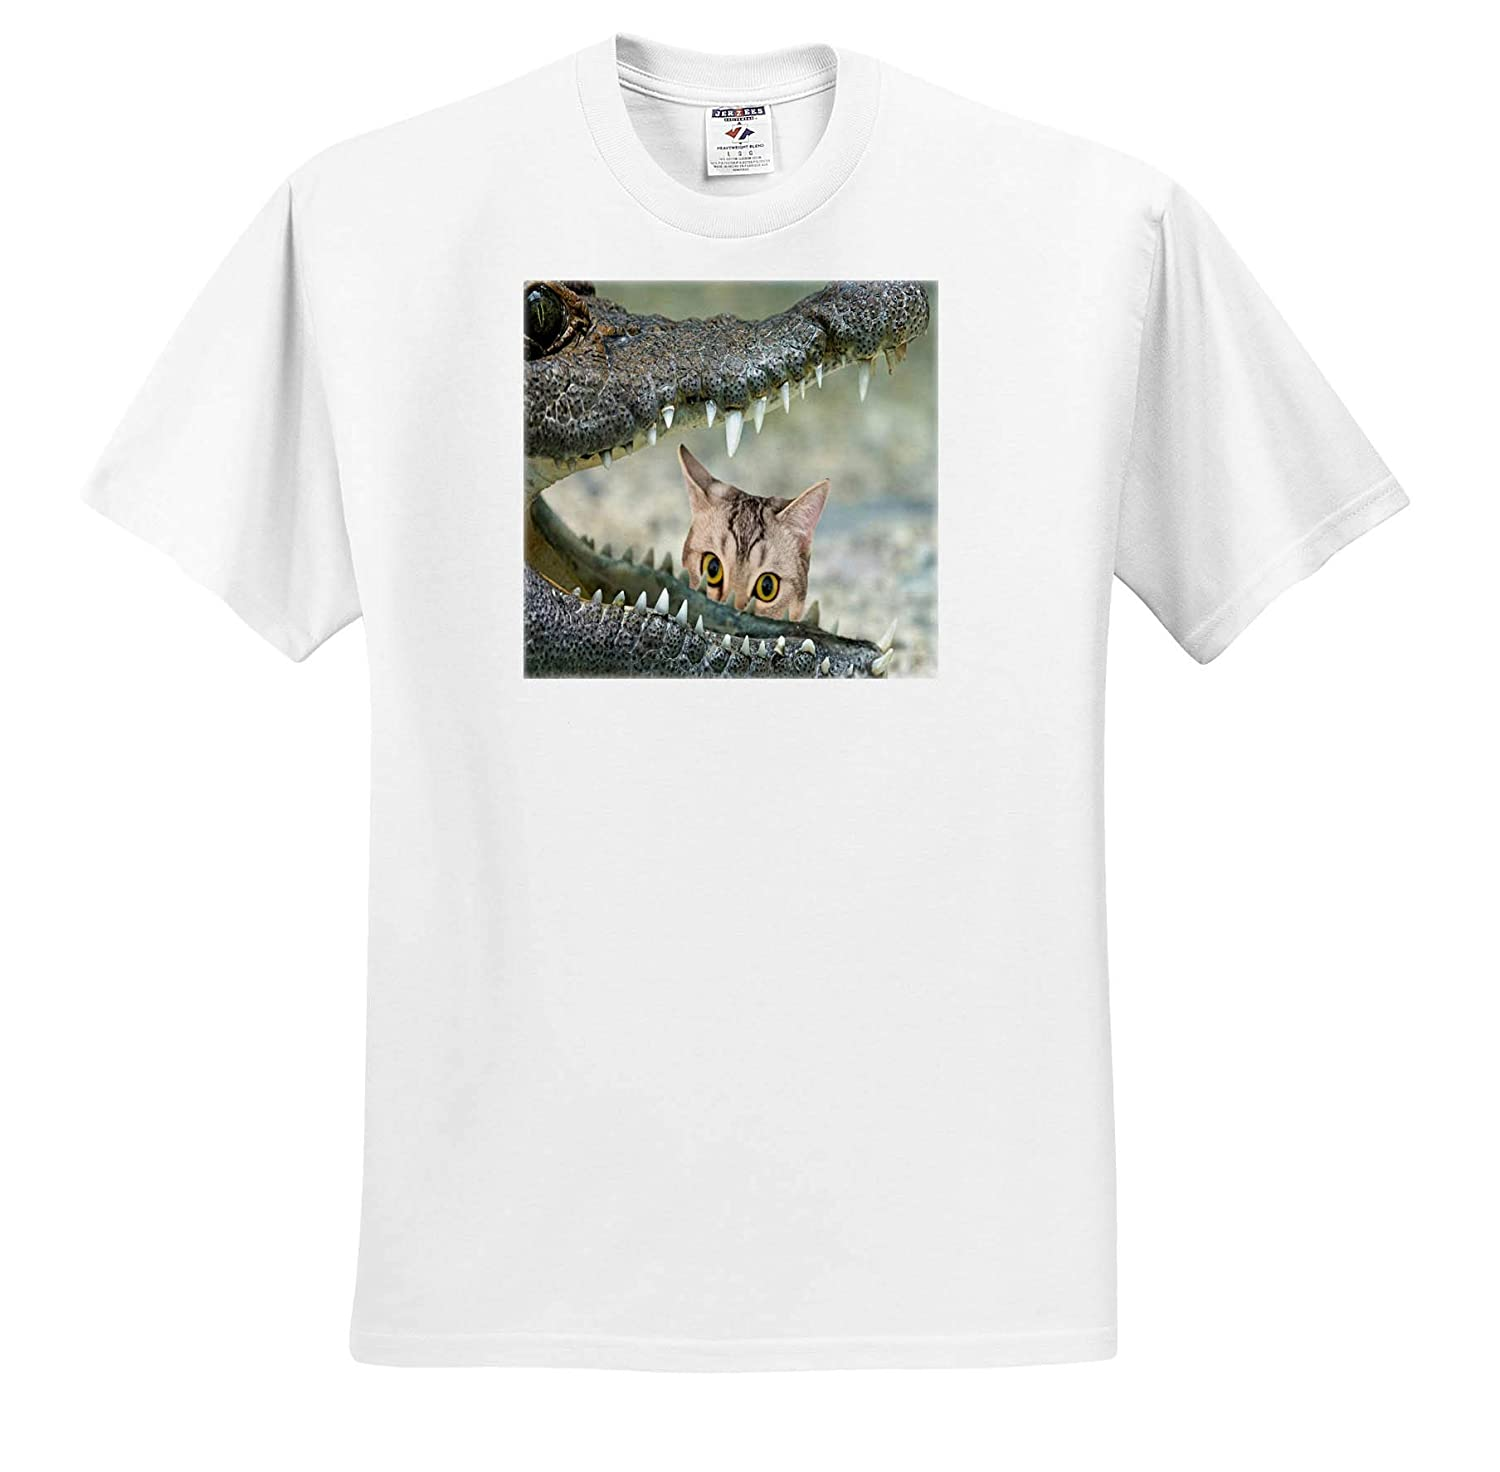 3dRose Lens Art by Florene Image of Kitten Stares at Open Crocodile Mouth T-Shirts Nature